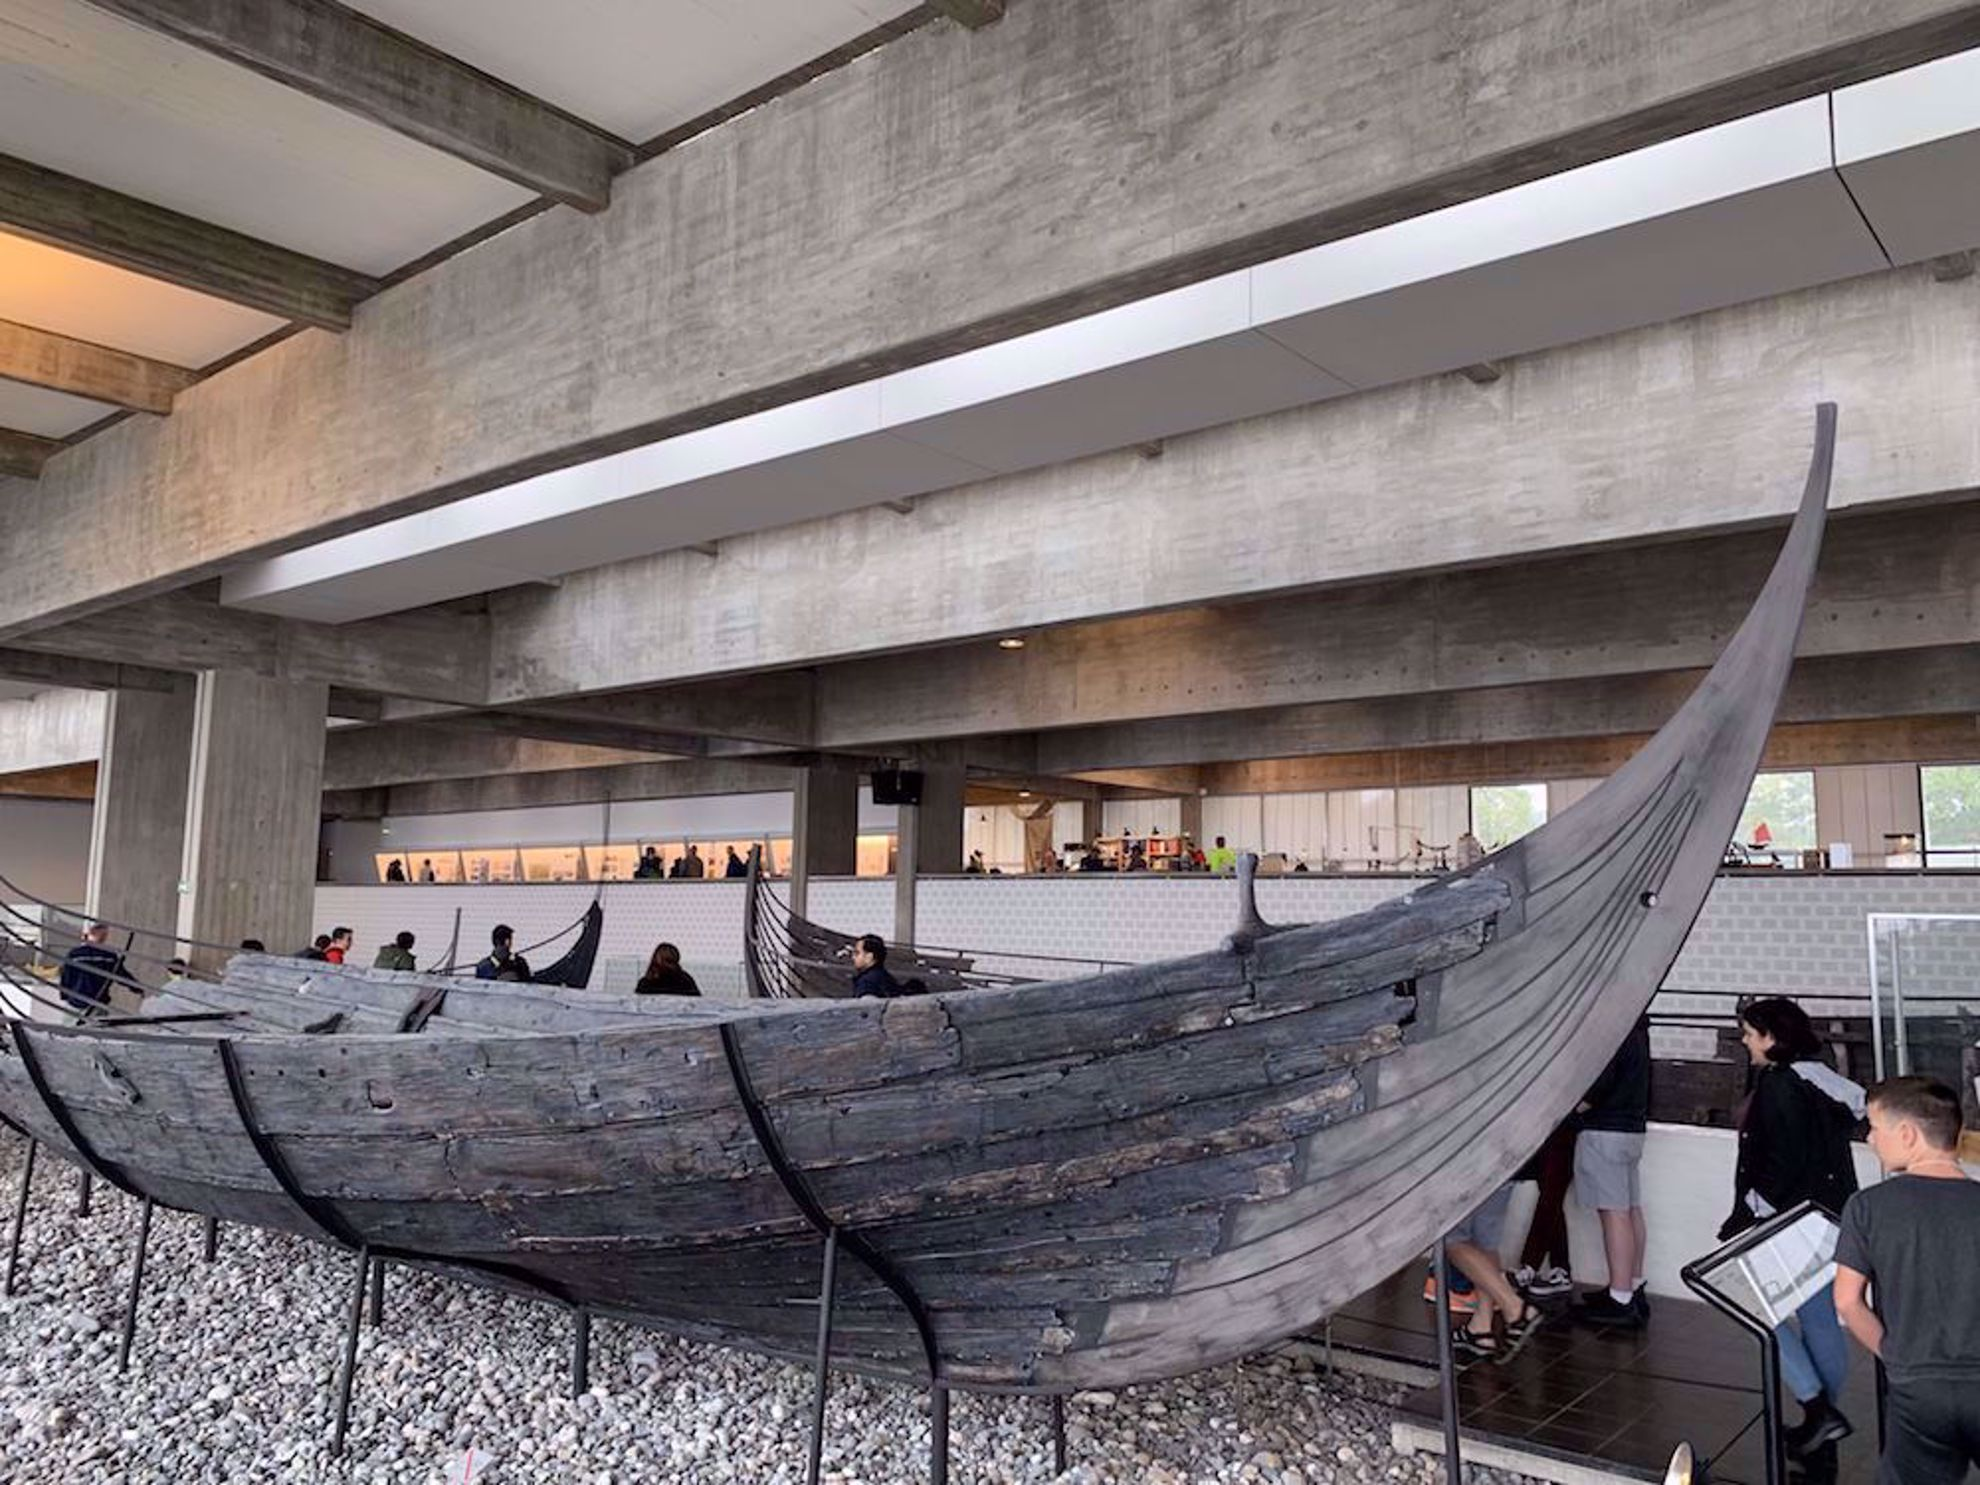 Viking ship at Roskilde museum